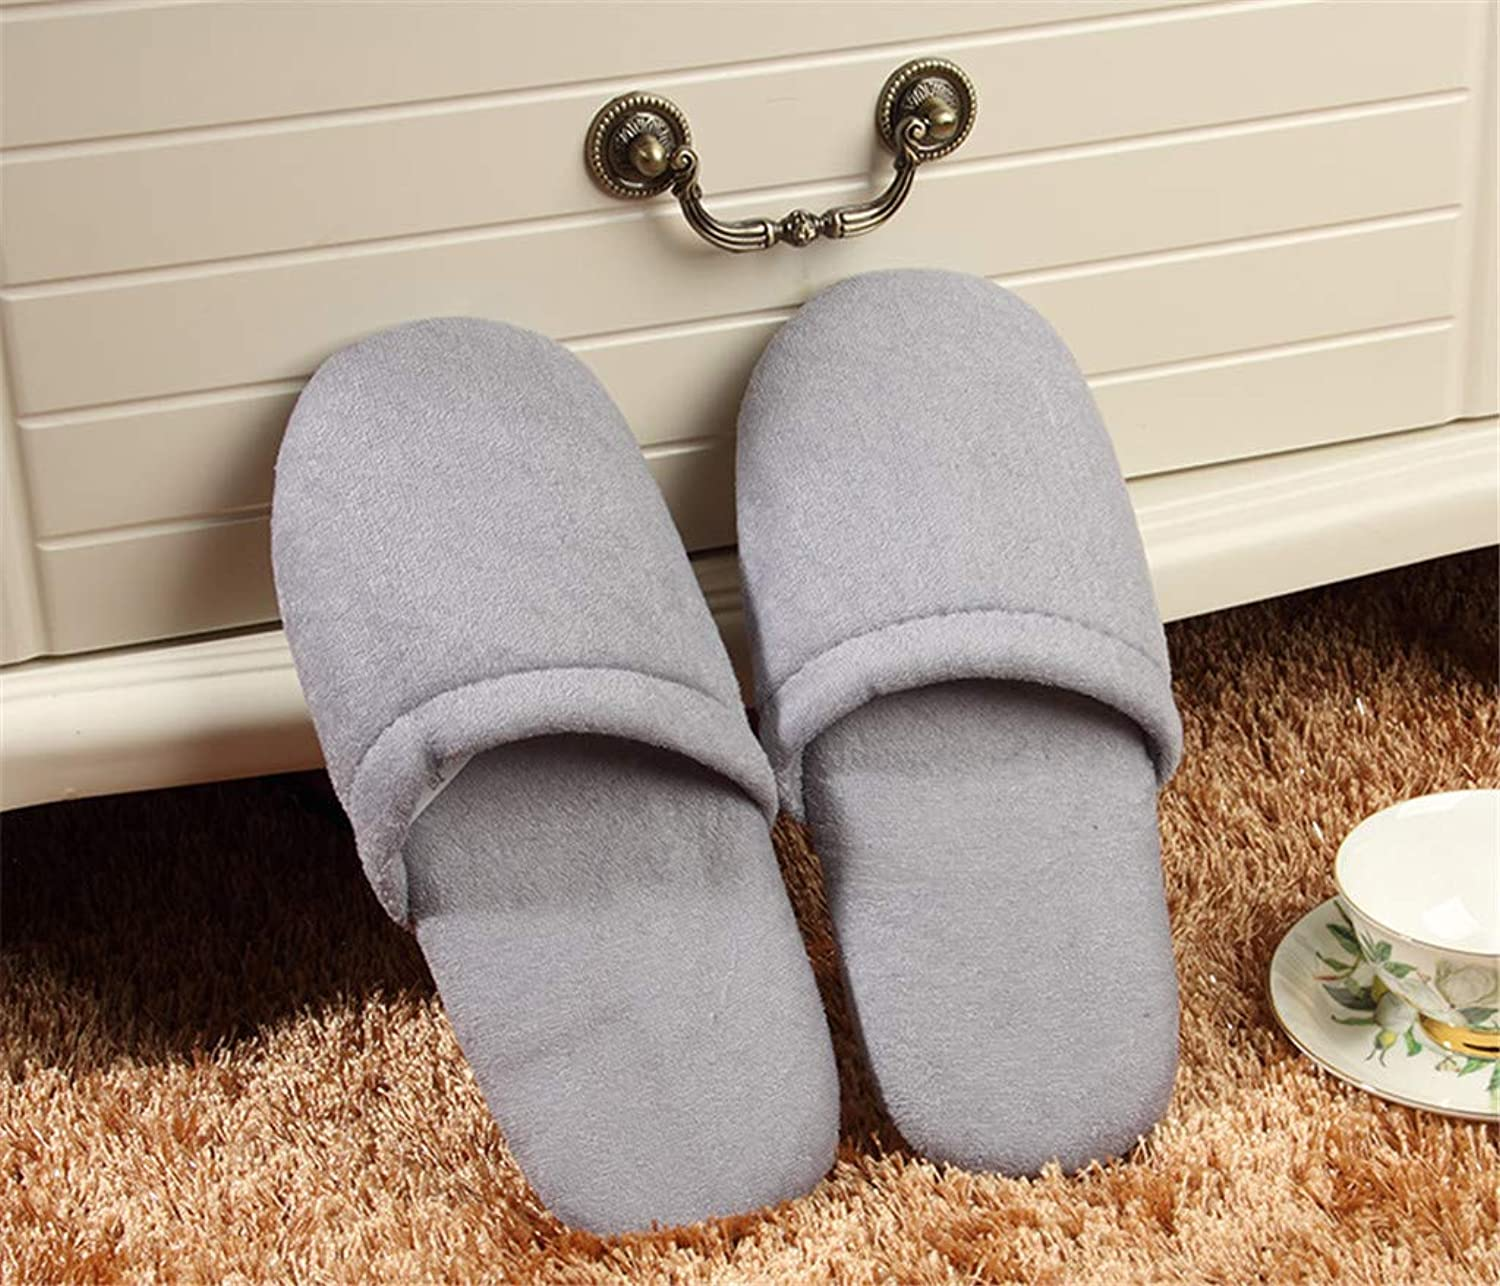 10 Pairs, Non-Slip Spa Guest Slippers Home Hospitality Floor colorful Soft Bread Slippers,007